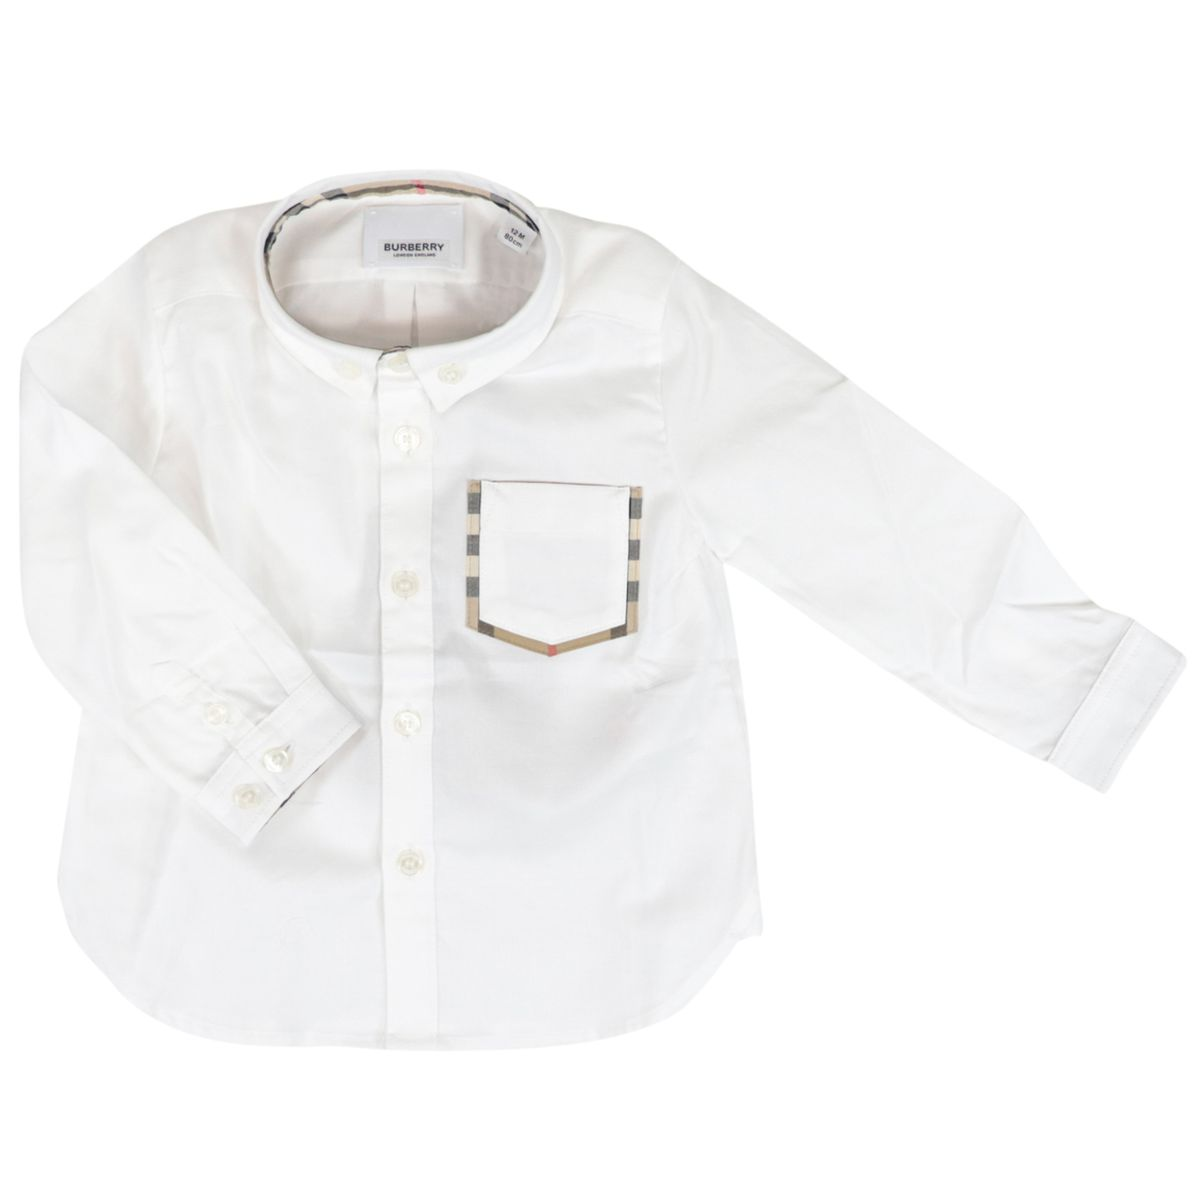 Long-sleeved cotton shirt with pocket and check patterned profiles White Burberry